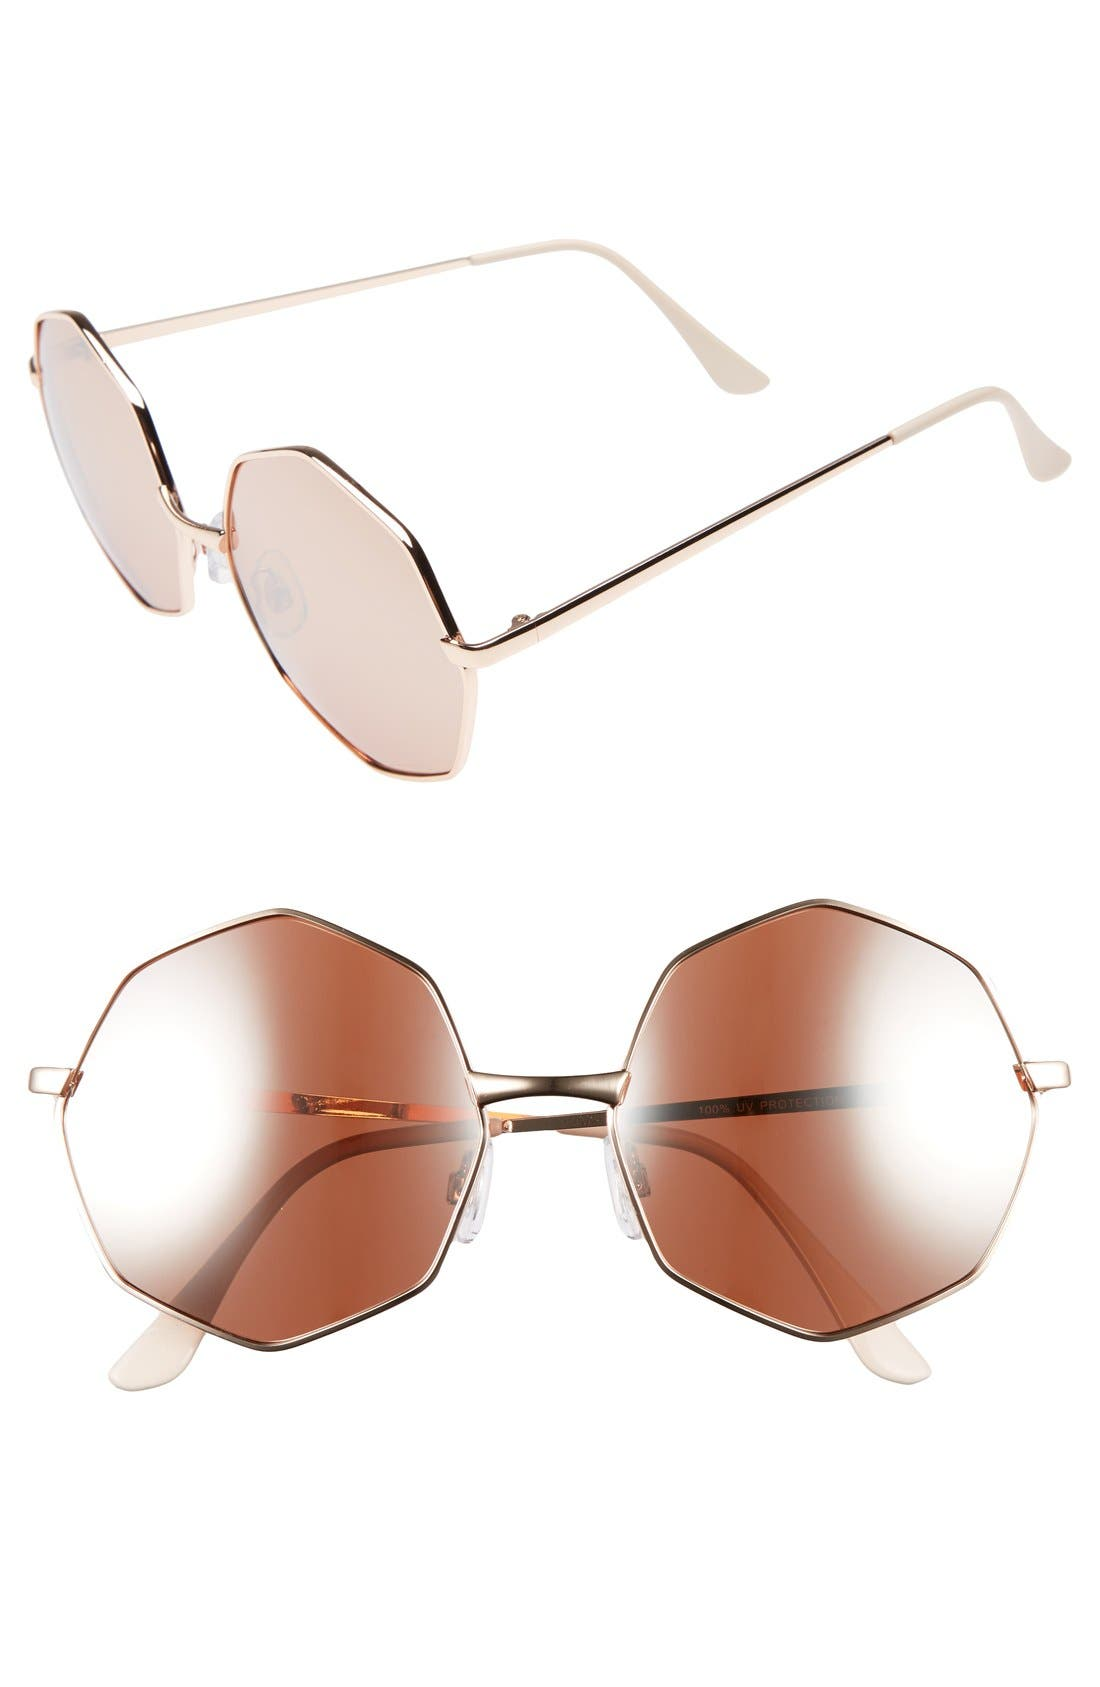 Alternate Image 1 Selected - BP. 58mm Octagon Metal Sunglasses